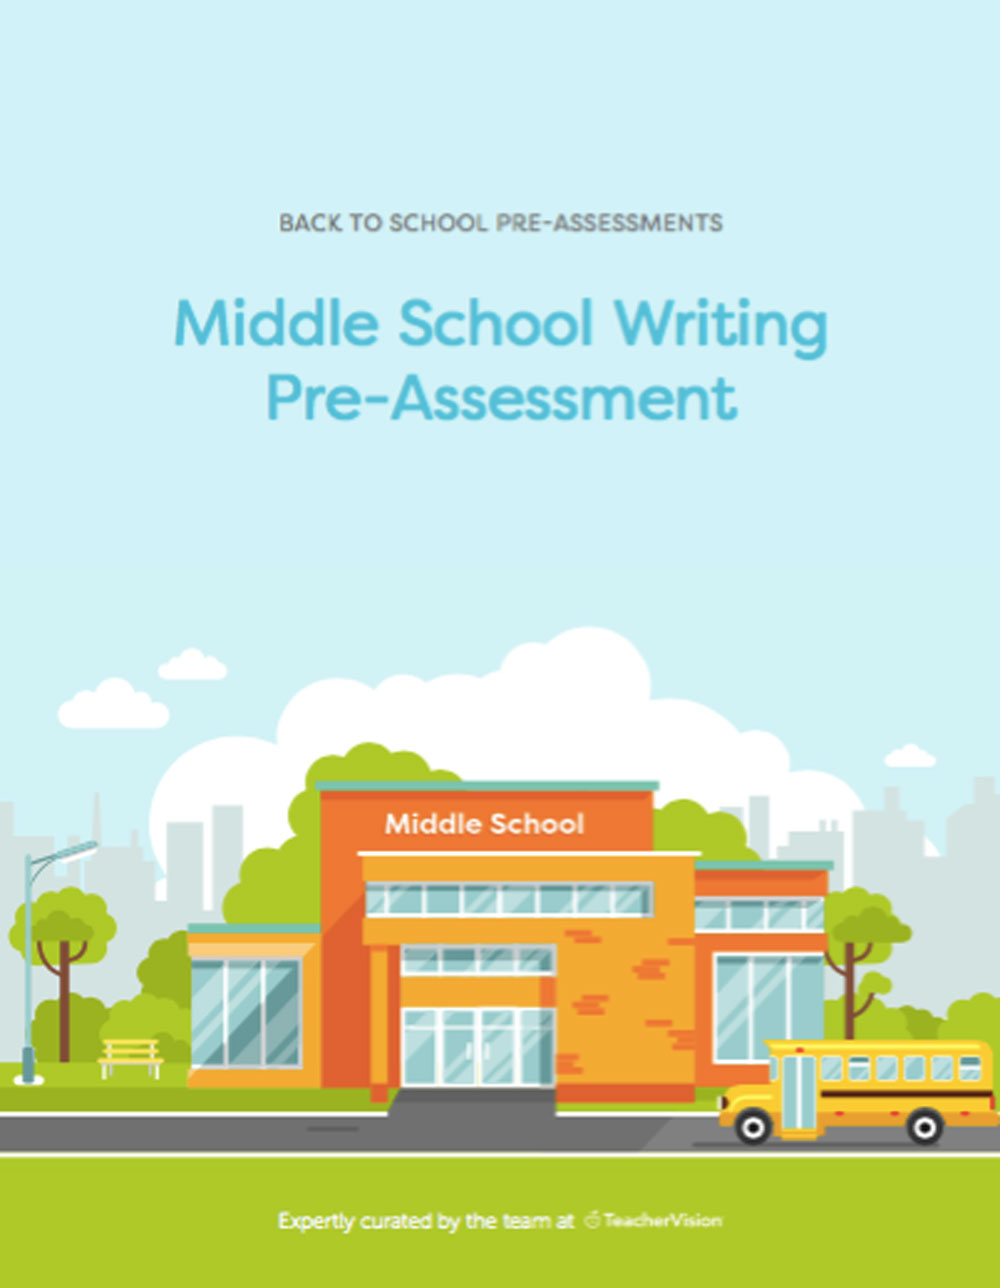 A middle school writing pre-assessment